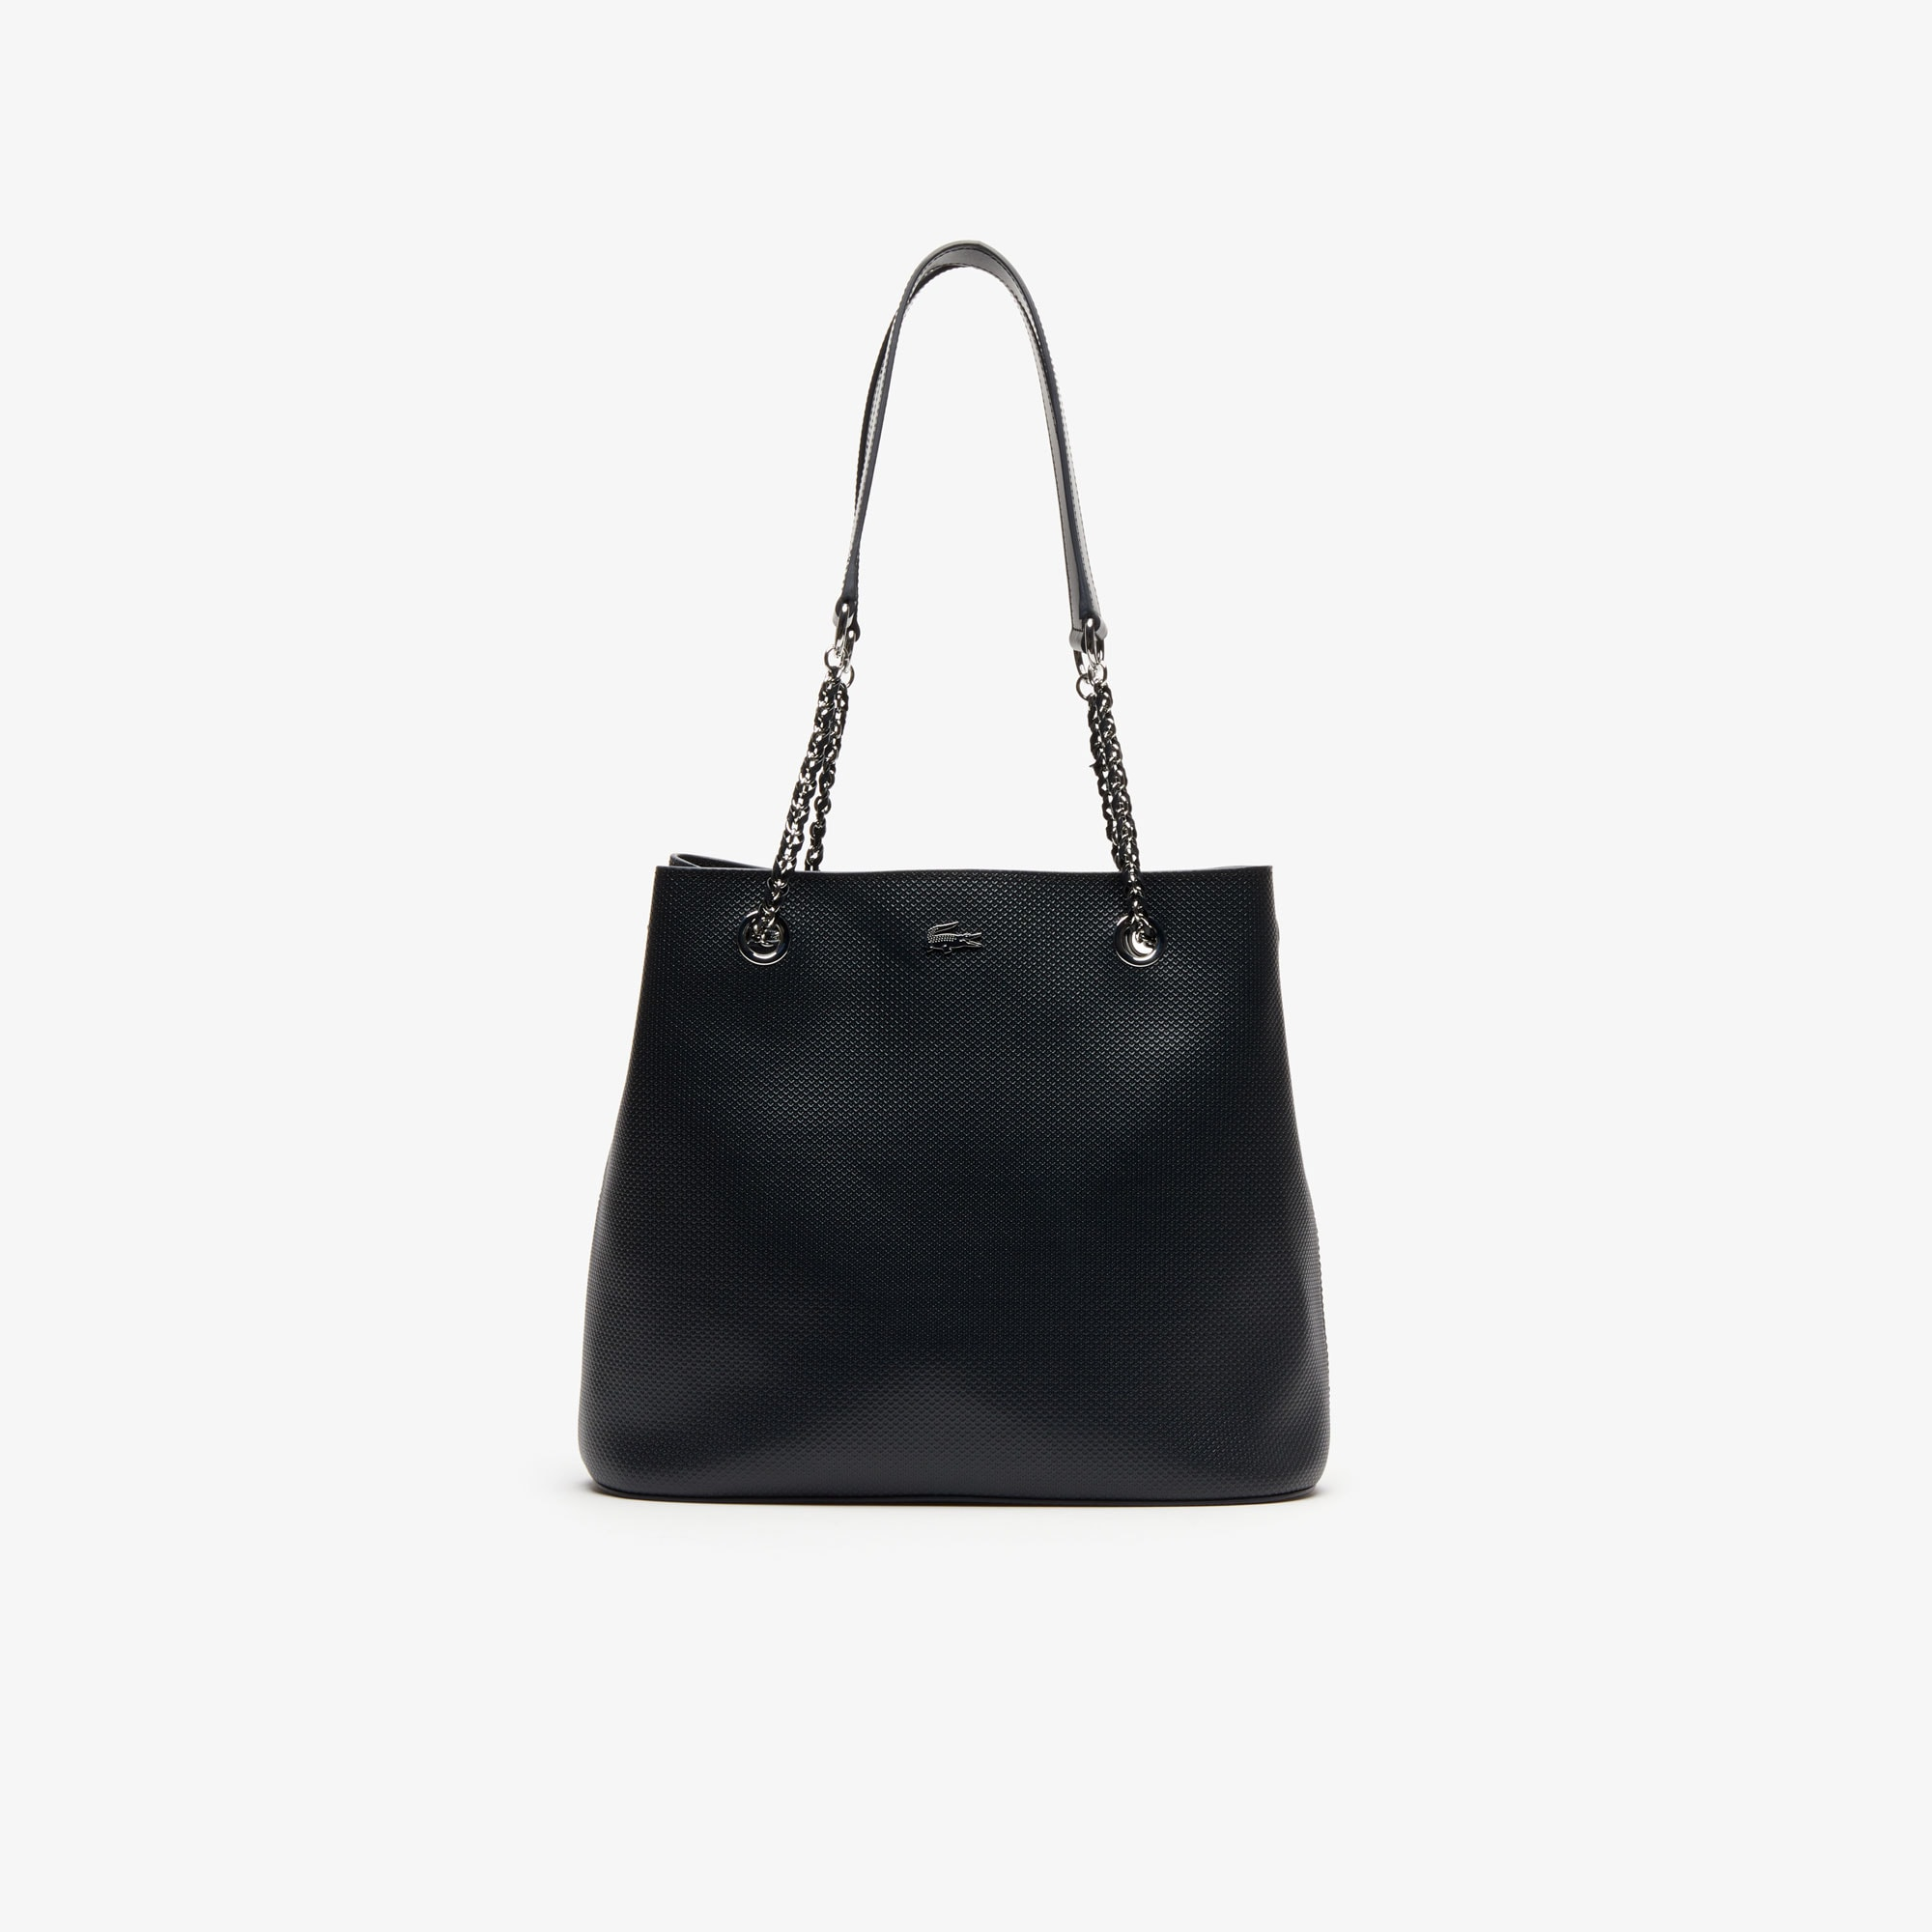 d297a0714 Bags & Handbags Collection | Women's Leather Goods | LACOSTE